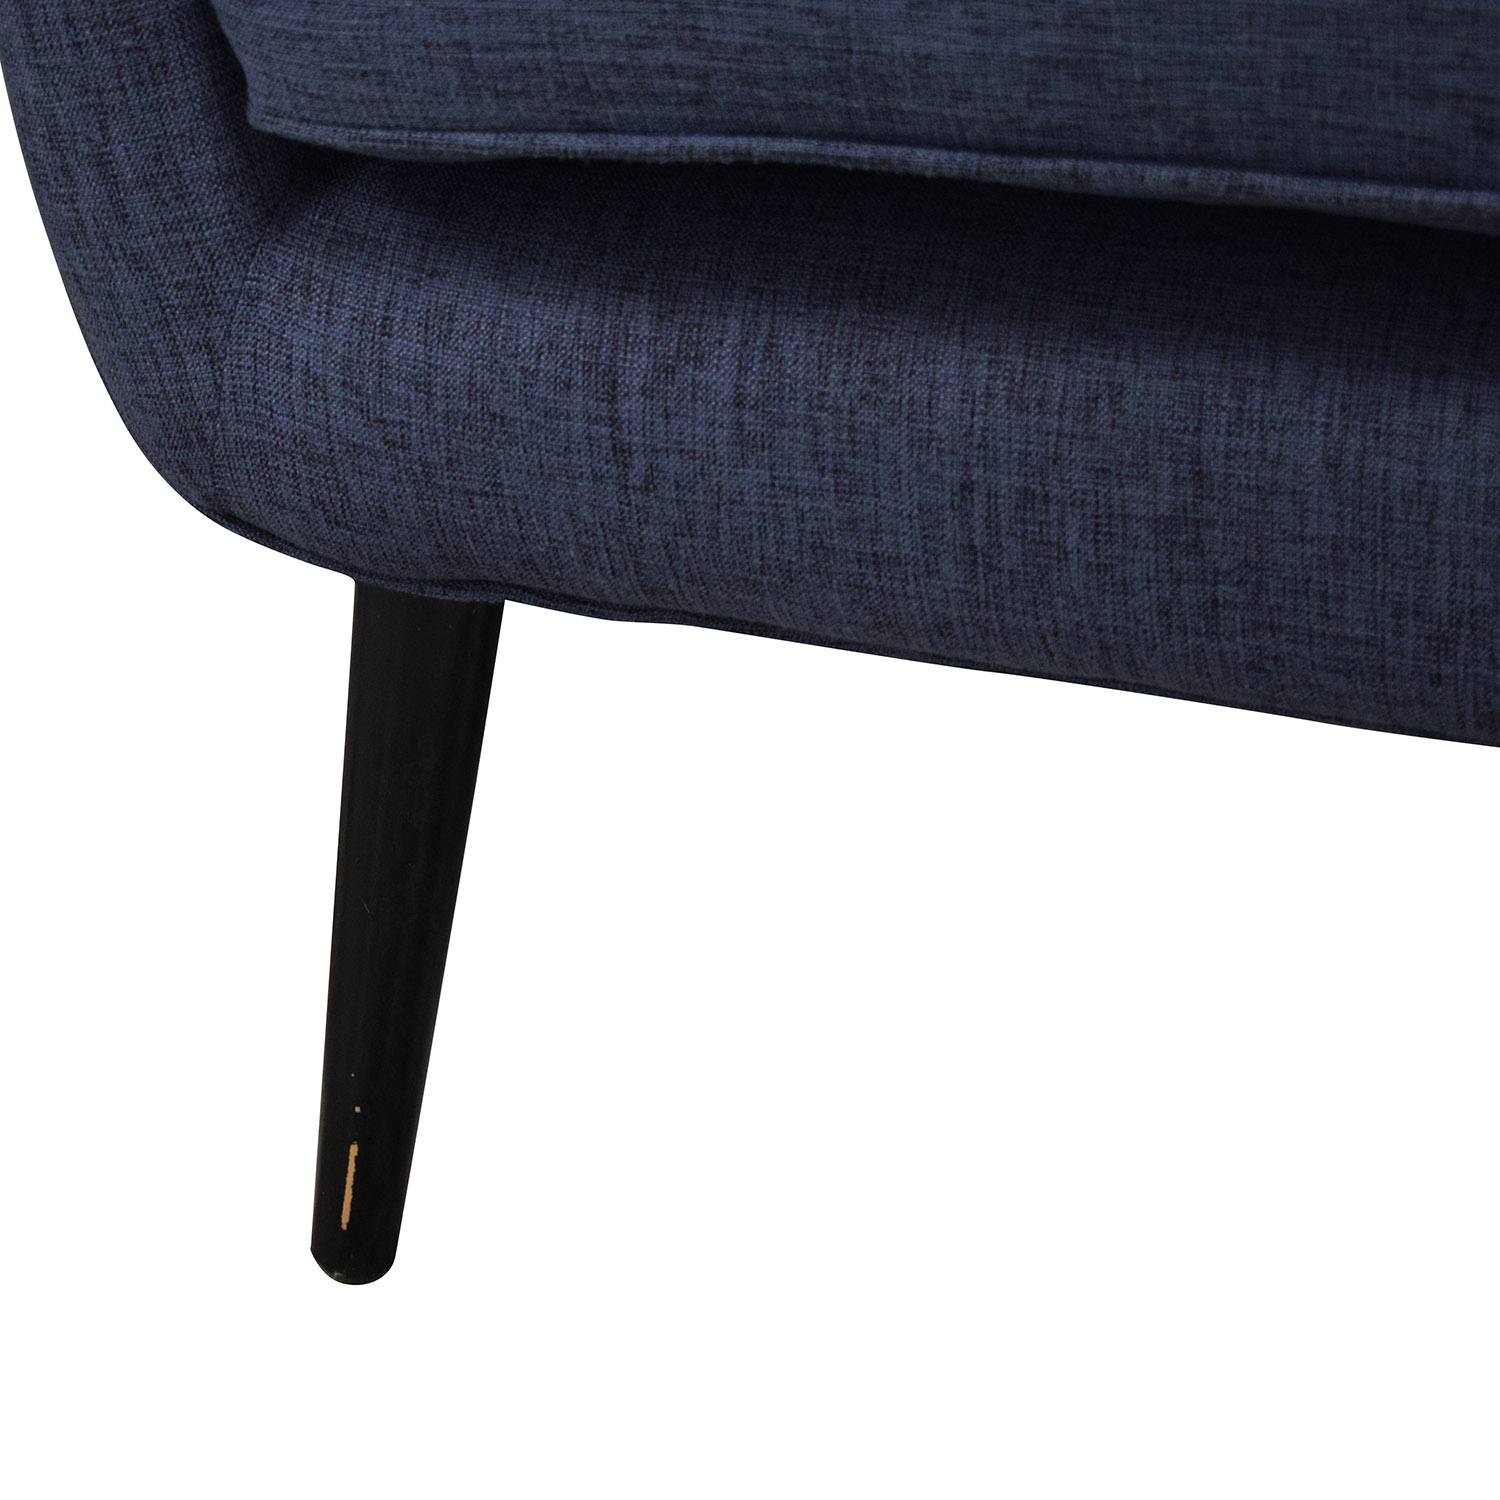 Tov TOV Furniture Clyde Linen Chairs ma